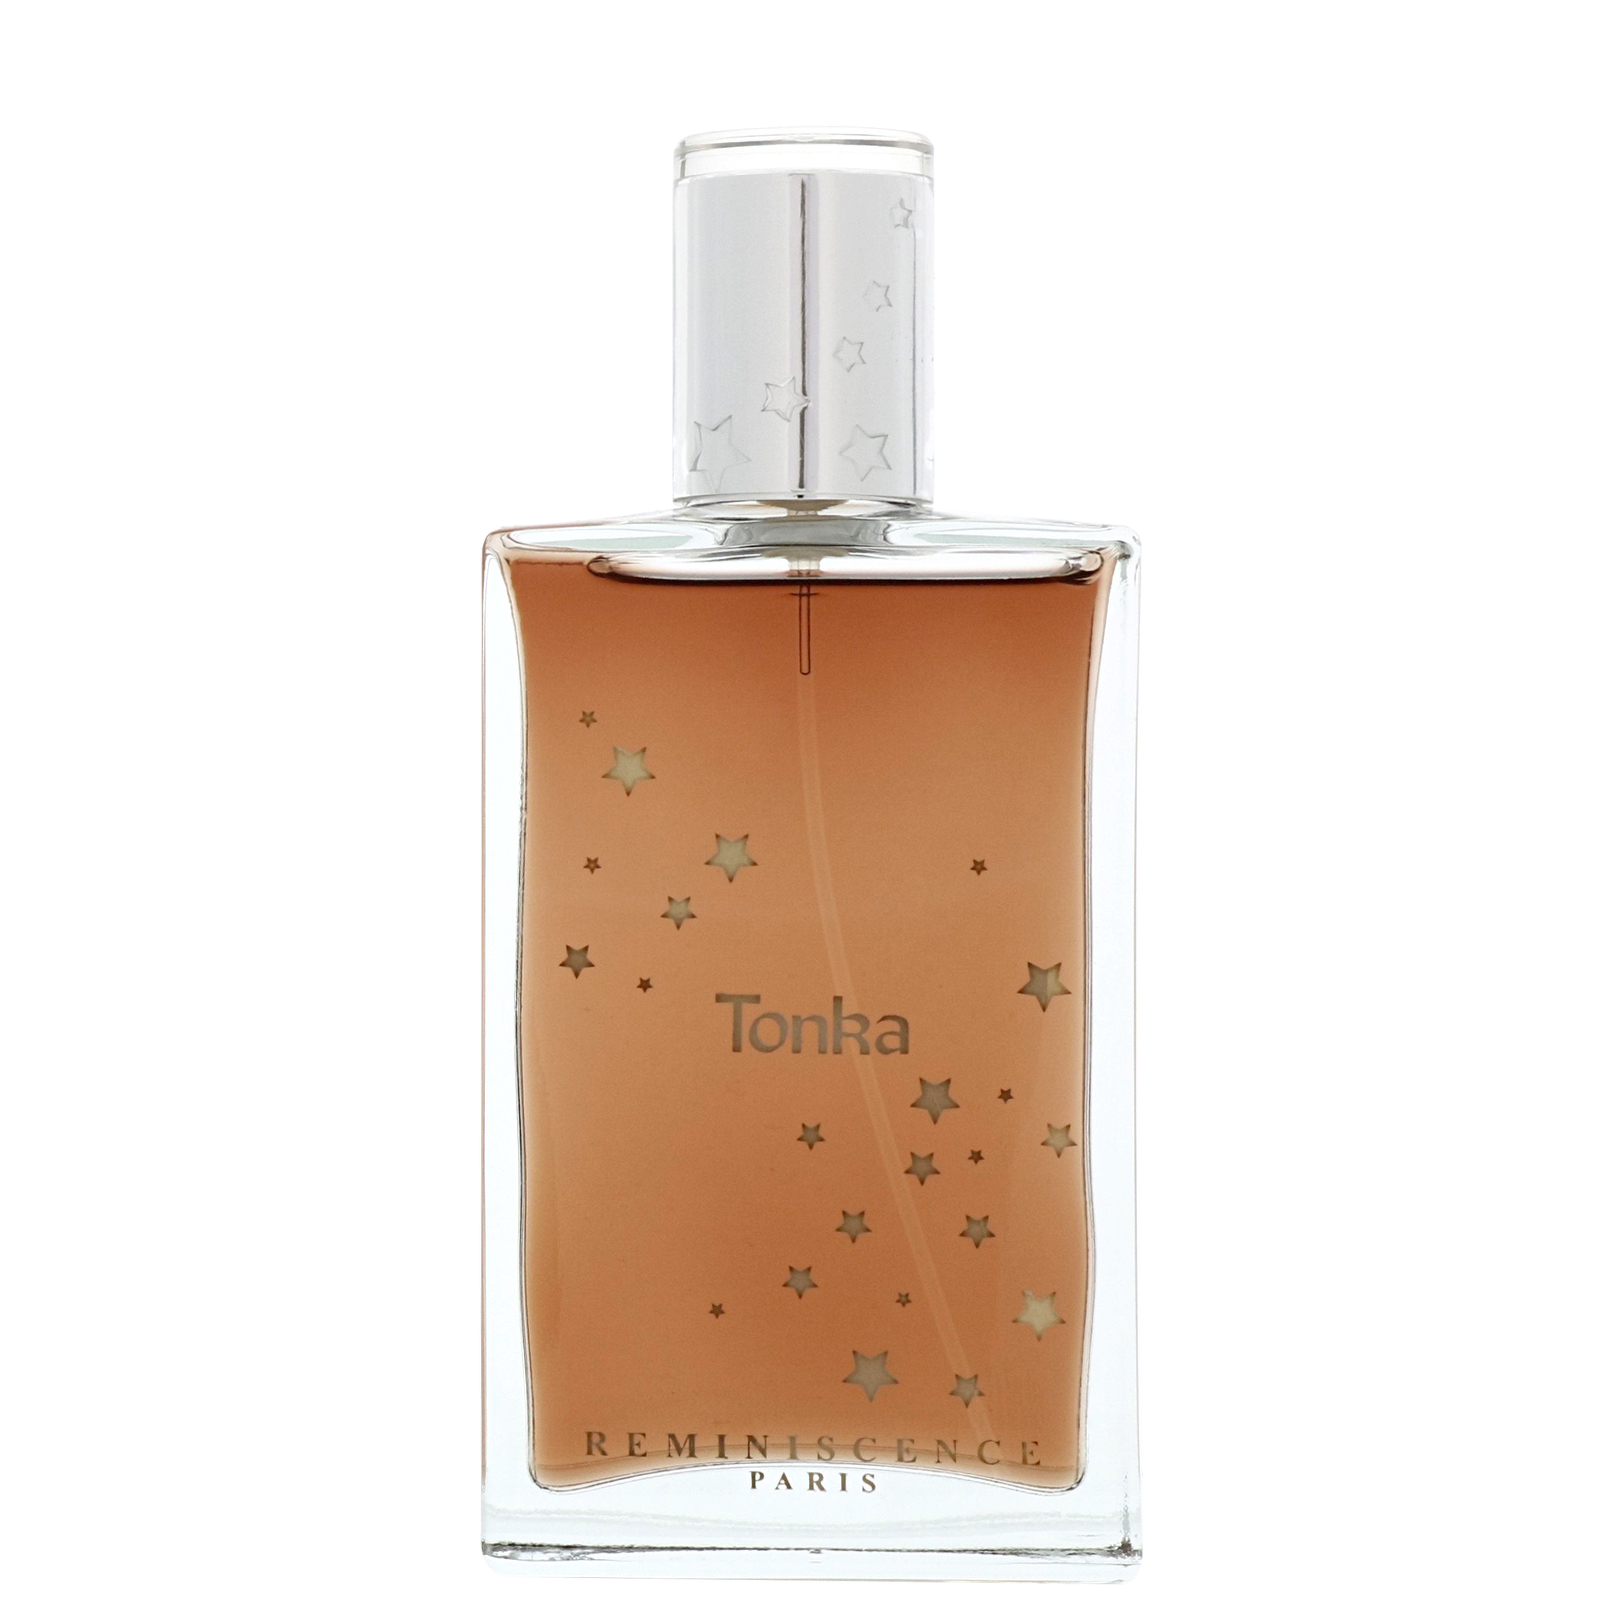 Reminiscence Tonka Eau de Toilette Spray 50ml